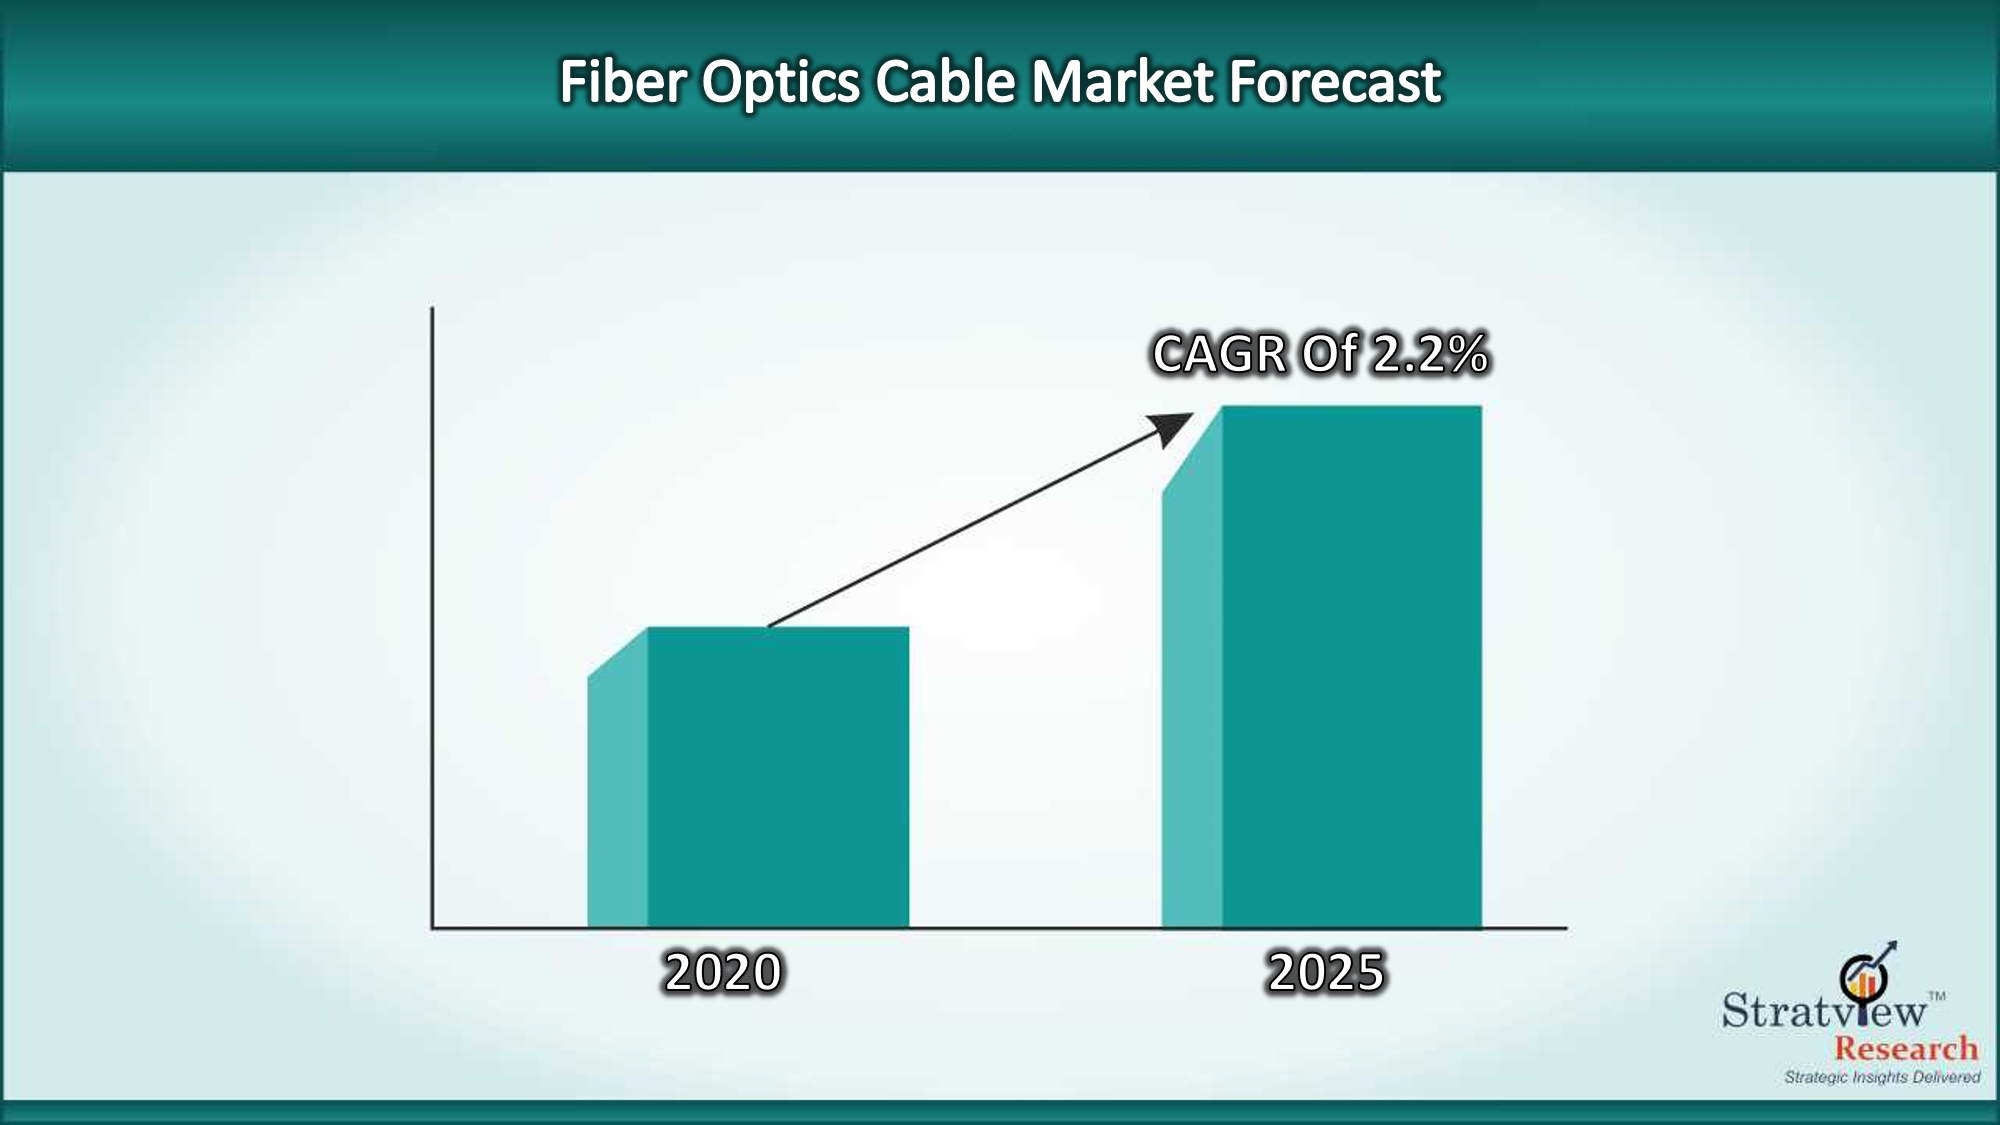 Fiber Optics Cable Market